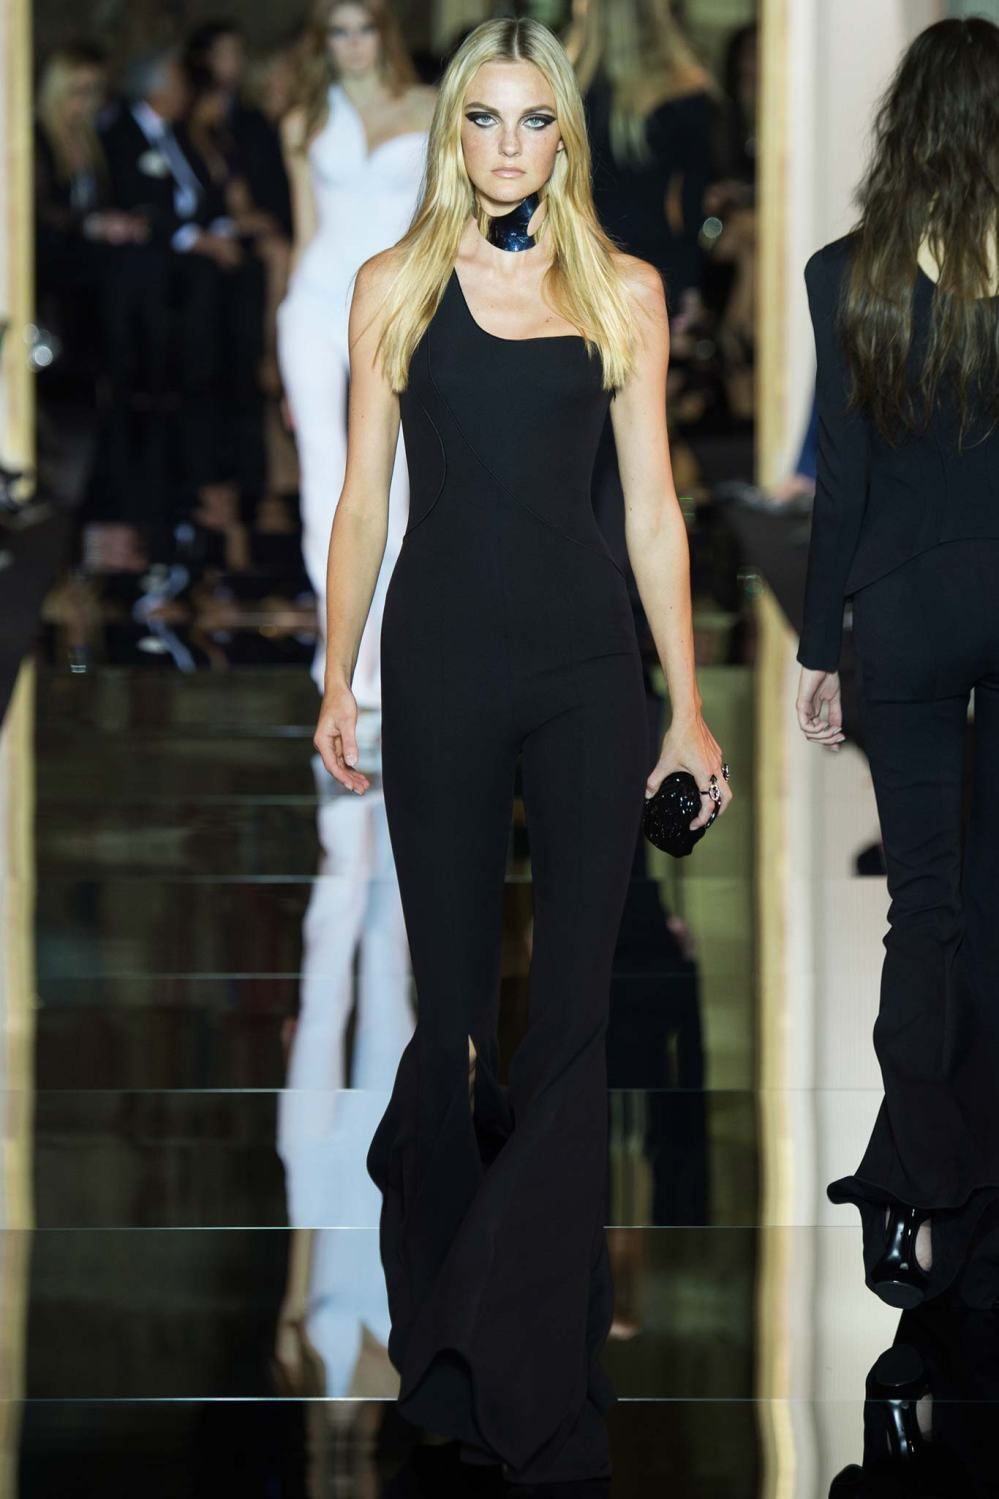 Atelier Versace, Spring/Summer 2015 Look 3 Model : Caroline Trentini Photo: Kim Weston Arnold/Indigitalimages.com